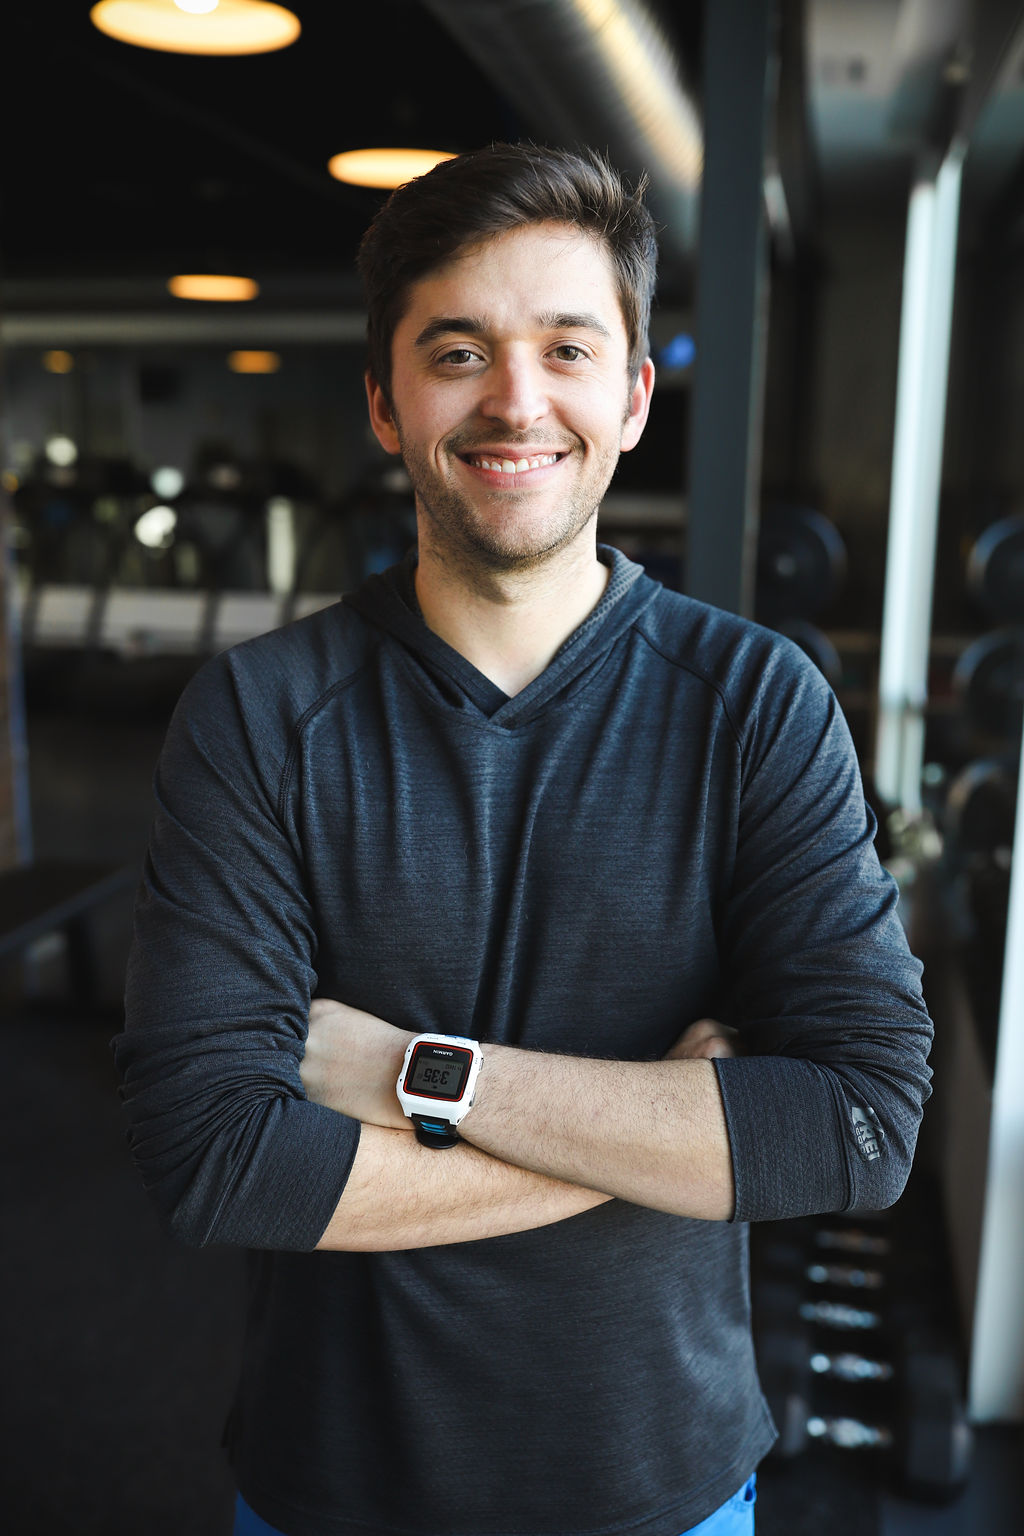 Nathan Carlson PT, DPT, USATF - Nathan Carlson received his Doctor of Physical Therapy from Rockhurst University and has been focuses on the management of runners and triathletes. He is a USA Track and Field Coach and uses his extensive experience working with endurance athletes to provide the most comprehensive care in the Midwest. His specific clinical interests include the management of bone stress injuries and tendon related disorders. Aside from patient care, Nathan manages multiple local runners and triathletes strength training programming. Nathan has one simple goal. Provide the highest quality injury management and training experience for endurance athletes of all levels. Lastly, Nathan helps manage Chris Johnson's mentorship group the Runners Zone which helps coaches, clinicians and dedicated endurance athletes refine their abilities at injury management, coaching and strength training.Current Roles:Owner of Runningmate PT and PerformancePhysical Therapist for UMKC Cross Country and TrackHost of The Runner's Zone PodcastCoach for Zeren PTNathan also enjoys running, cycling, drinking coffee and spending time with his wife and two boys.